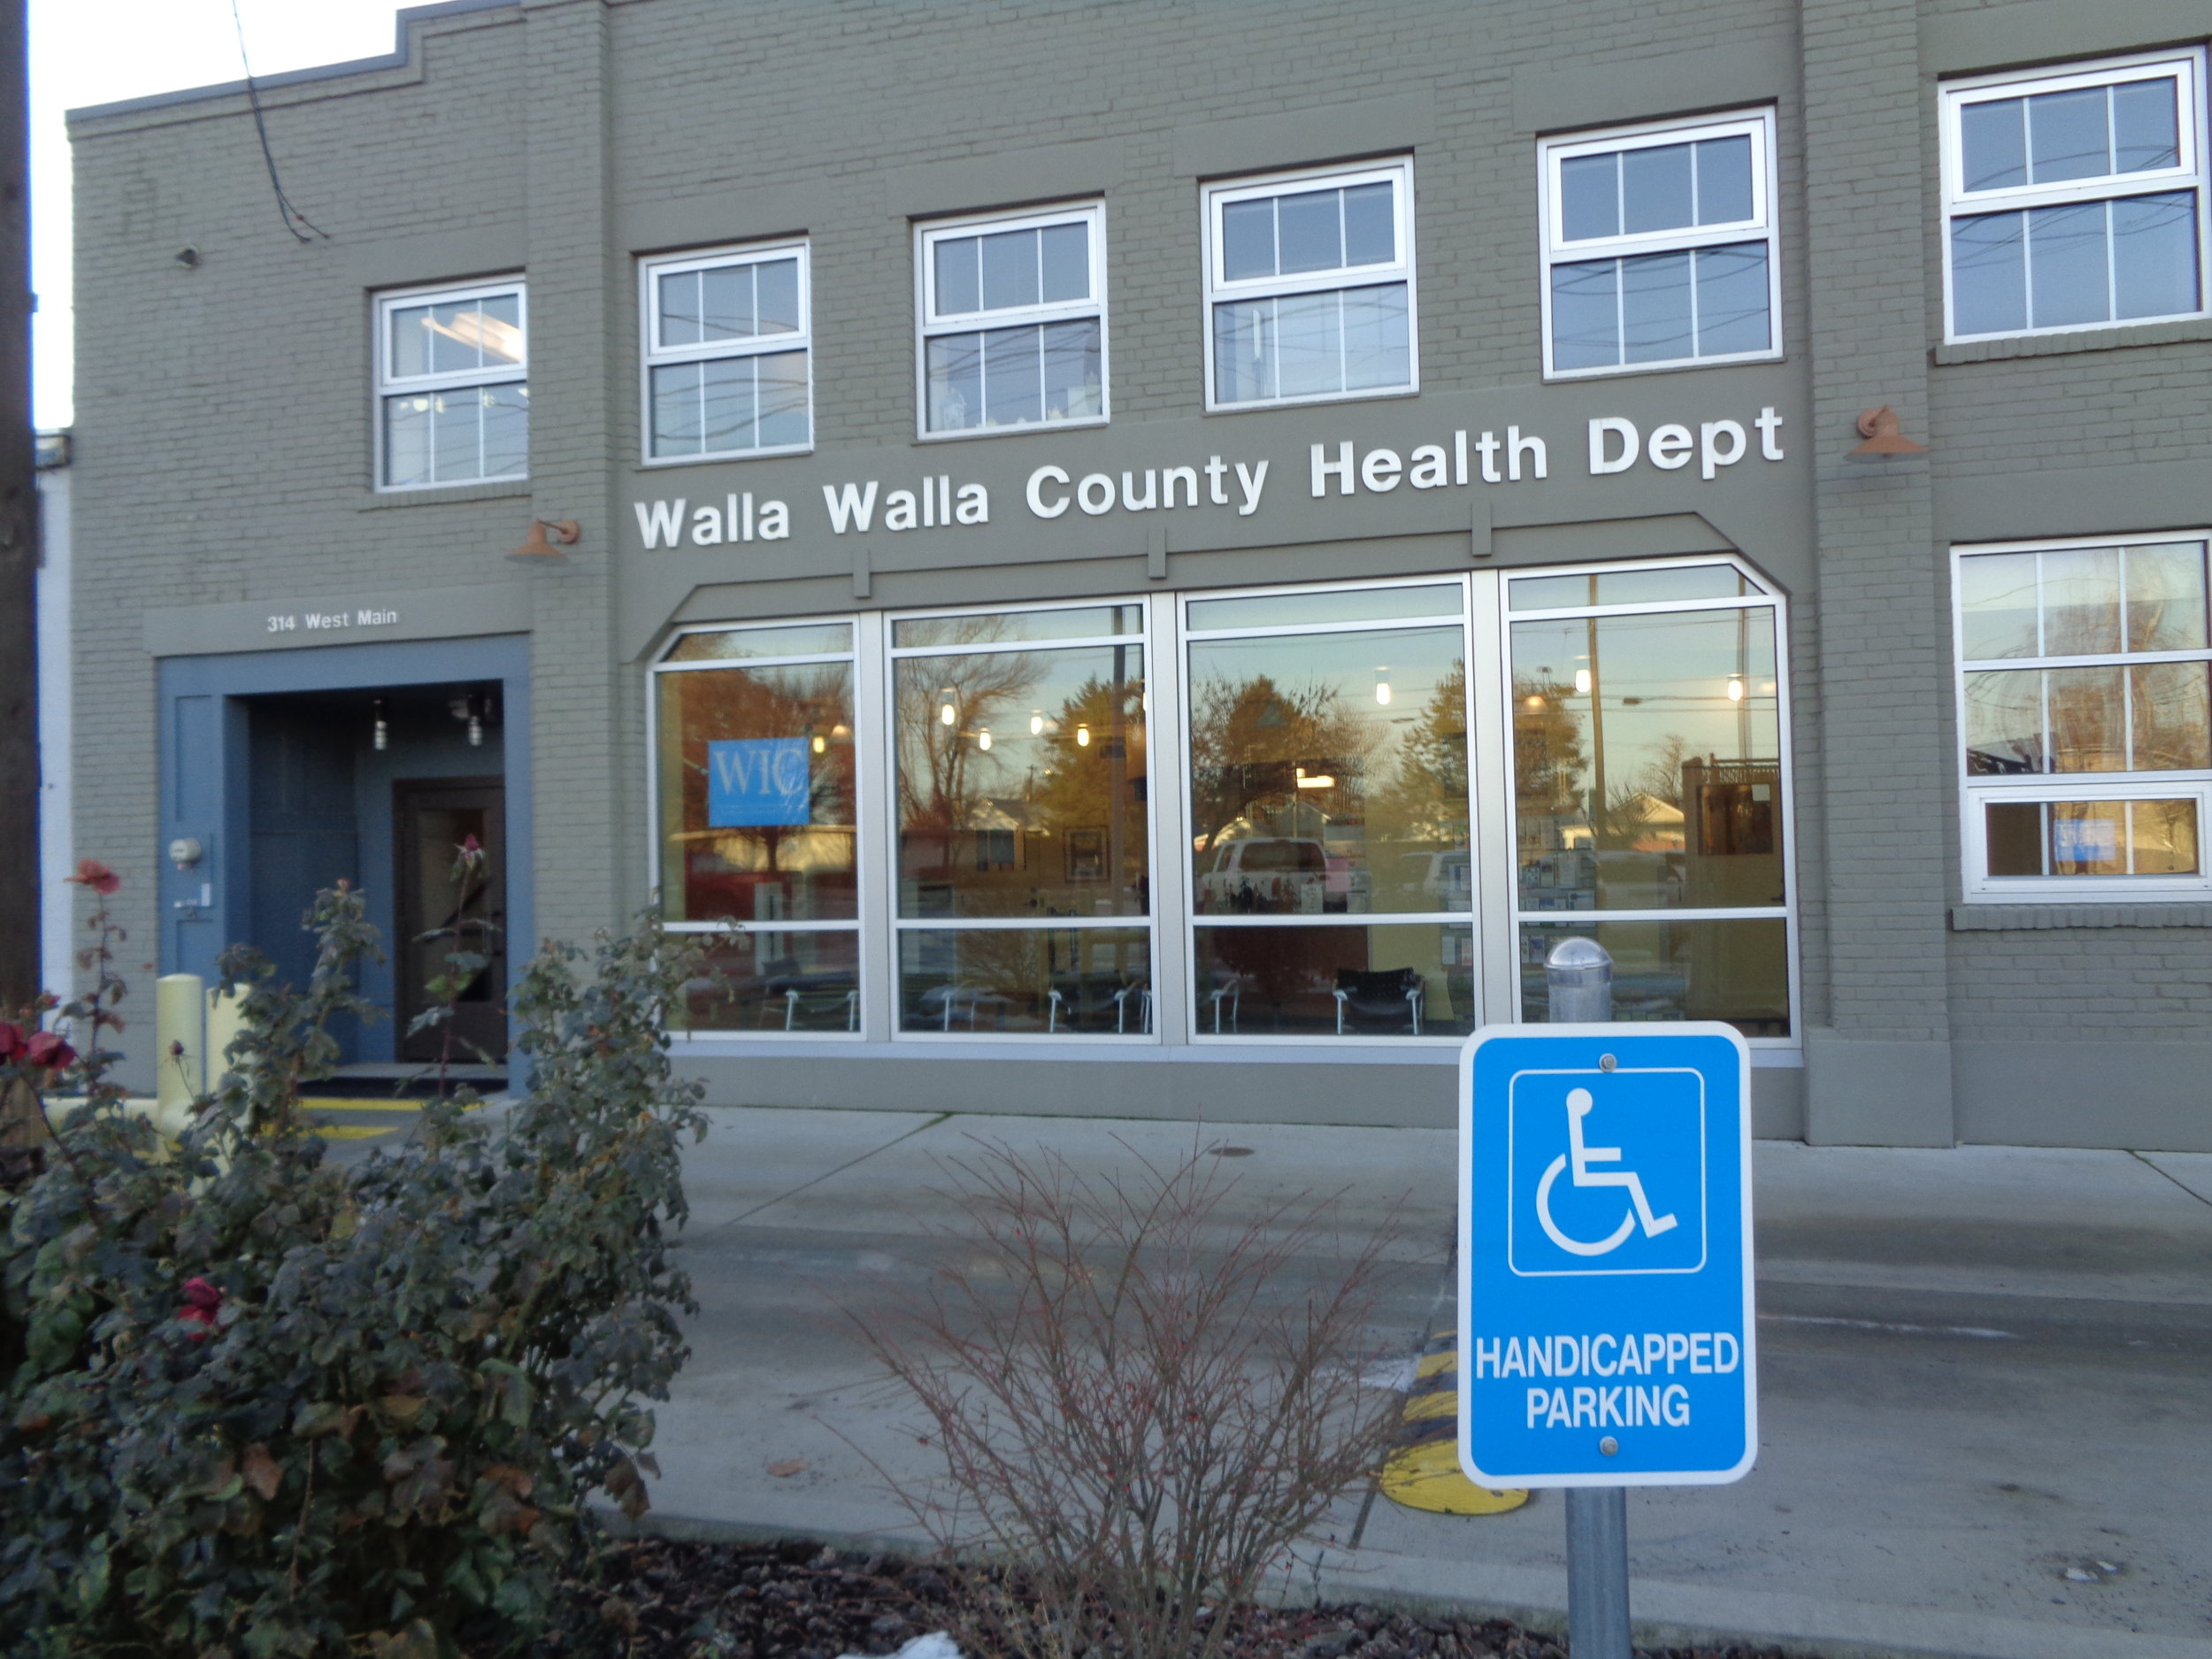 - The Walla Walla County Health Department, which is located at 314 W. Main Street in Walla Walla, is a full service public health department that serves all residents of the county. The department is operated by Walla Walla county government and is accredited by the Washington Department of Health. The mission of the department is to improve the quality of life of residents of Walla Walla County through disease prevention, health promotion, and public health protection. The vision of the department is to empower people to build a healthy, safe, and sustainable community.